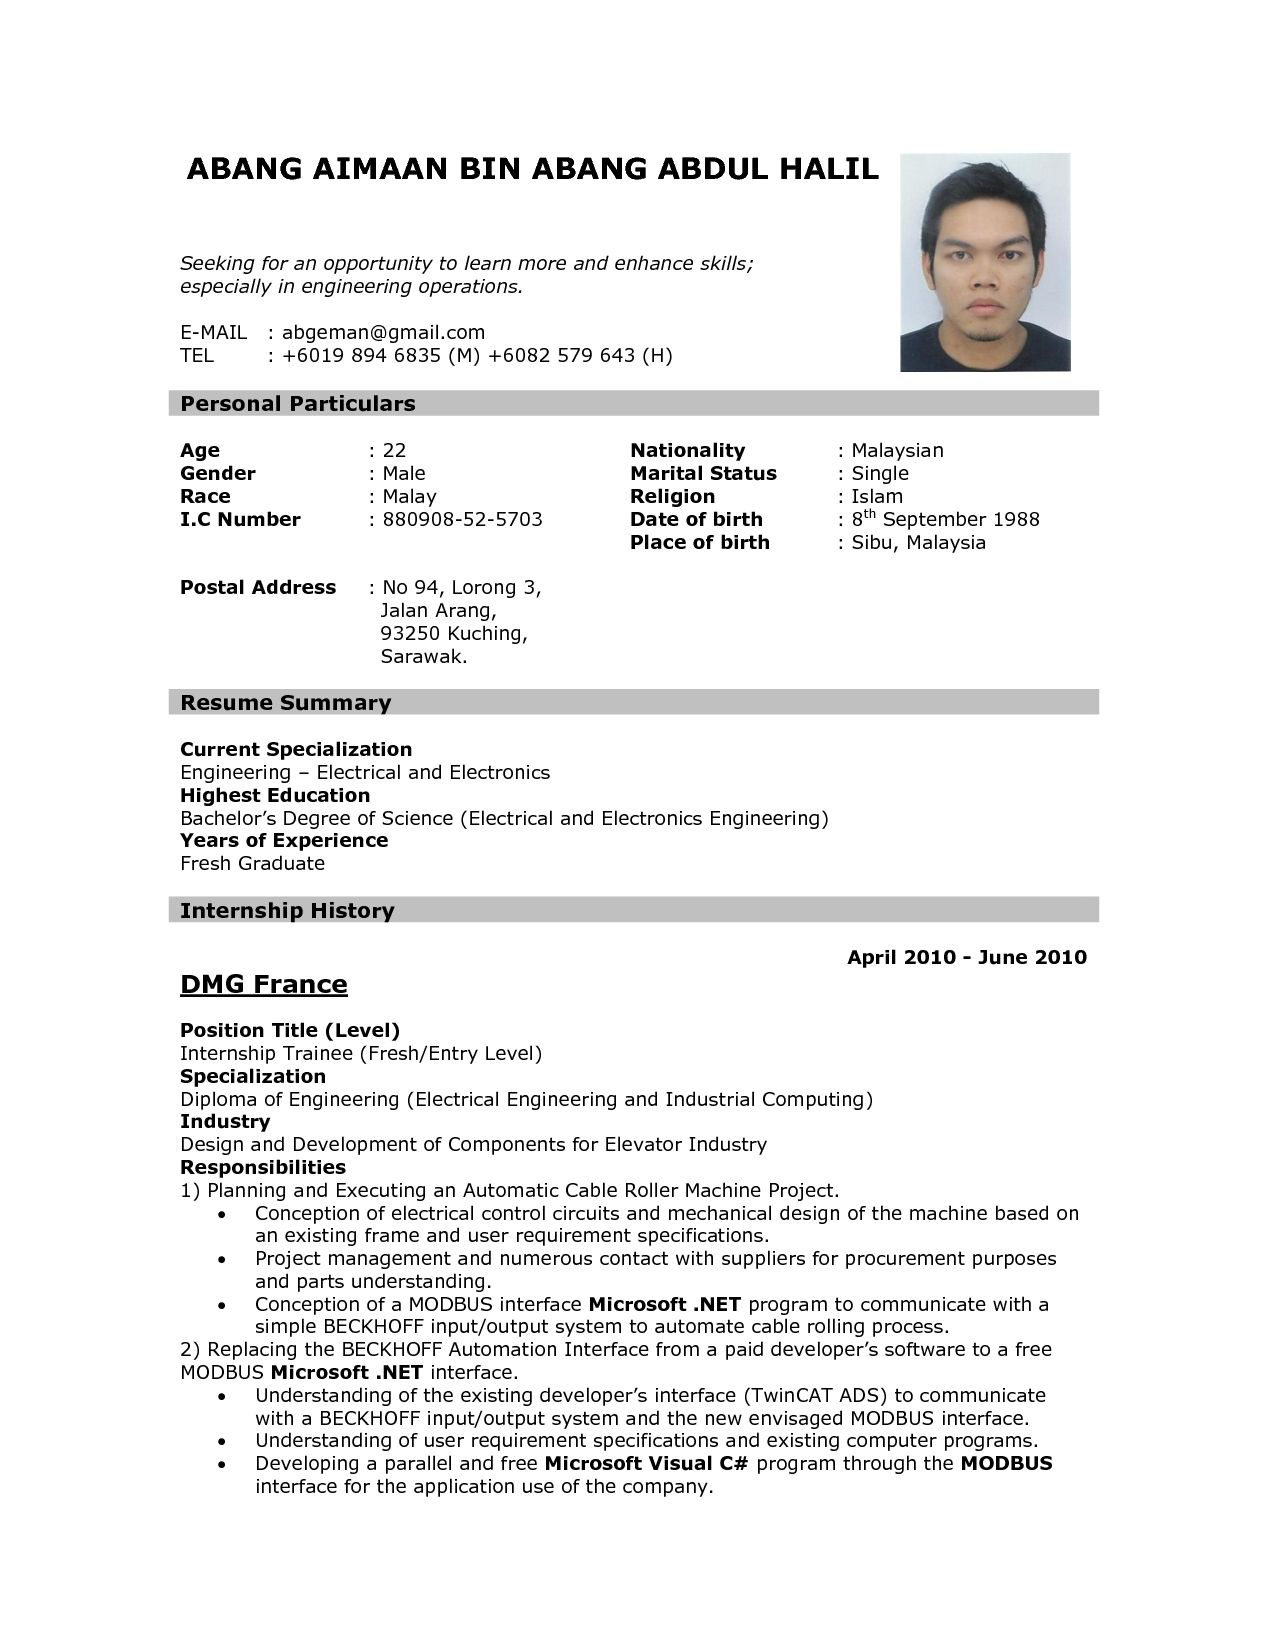 Format of resume for job application to download data sample resume format of resume for job application to download data sample resume the sample resume for applying a job expocarfo